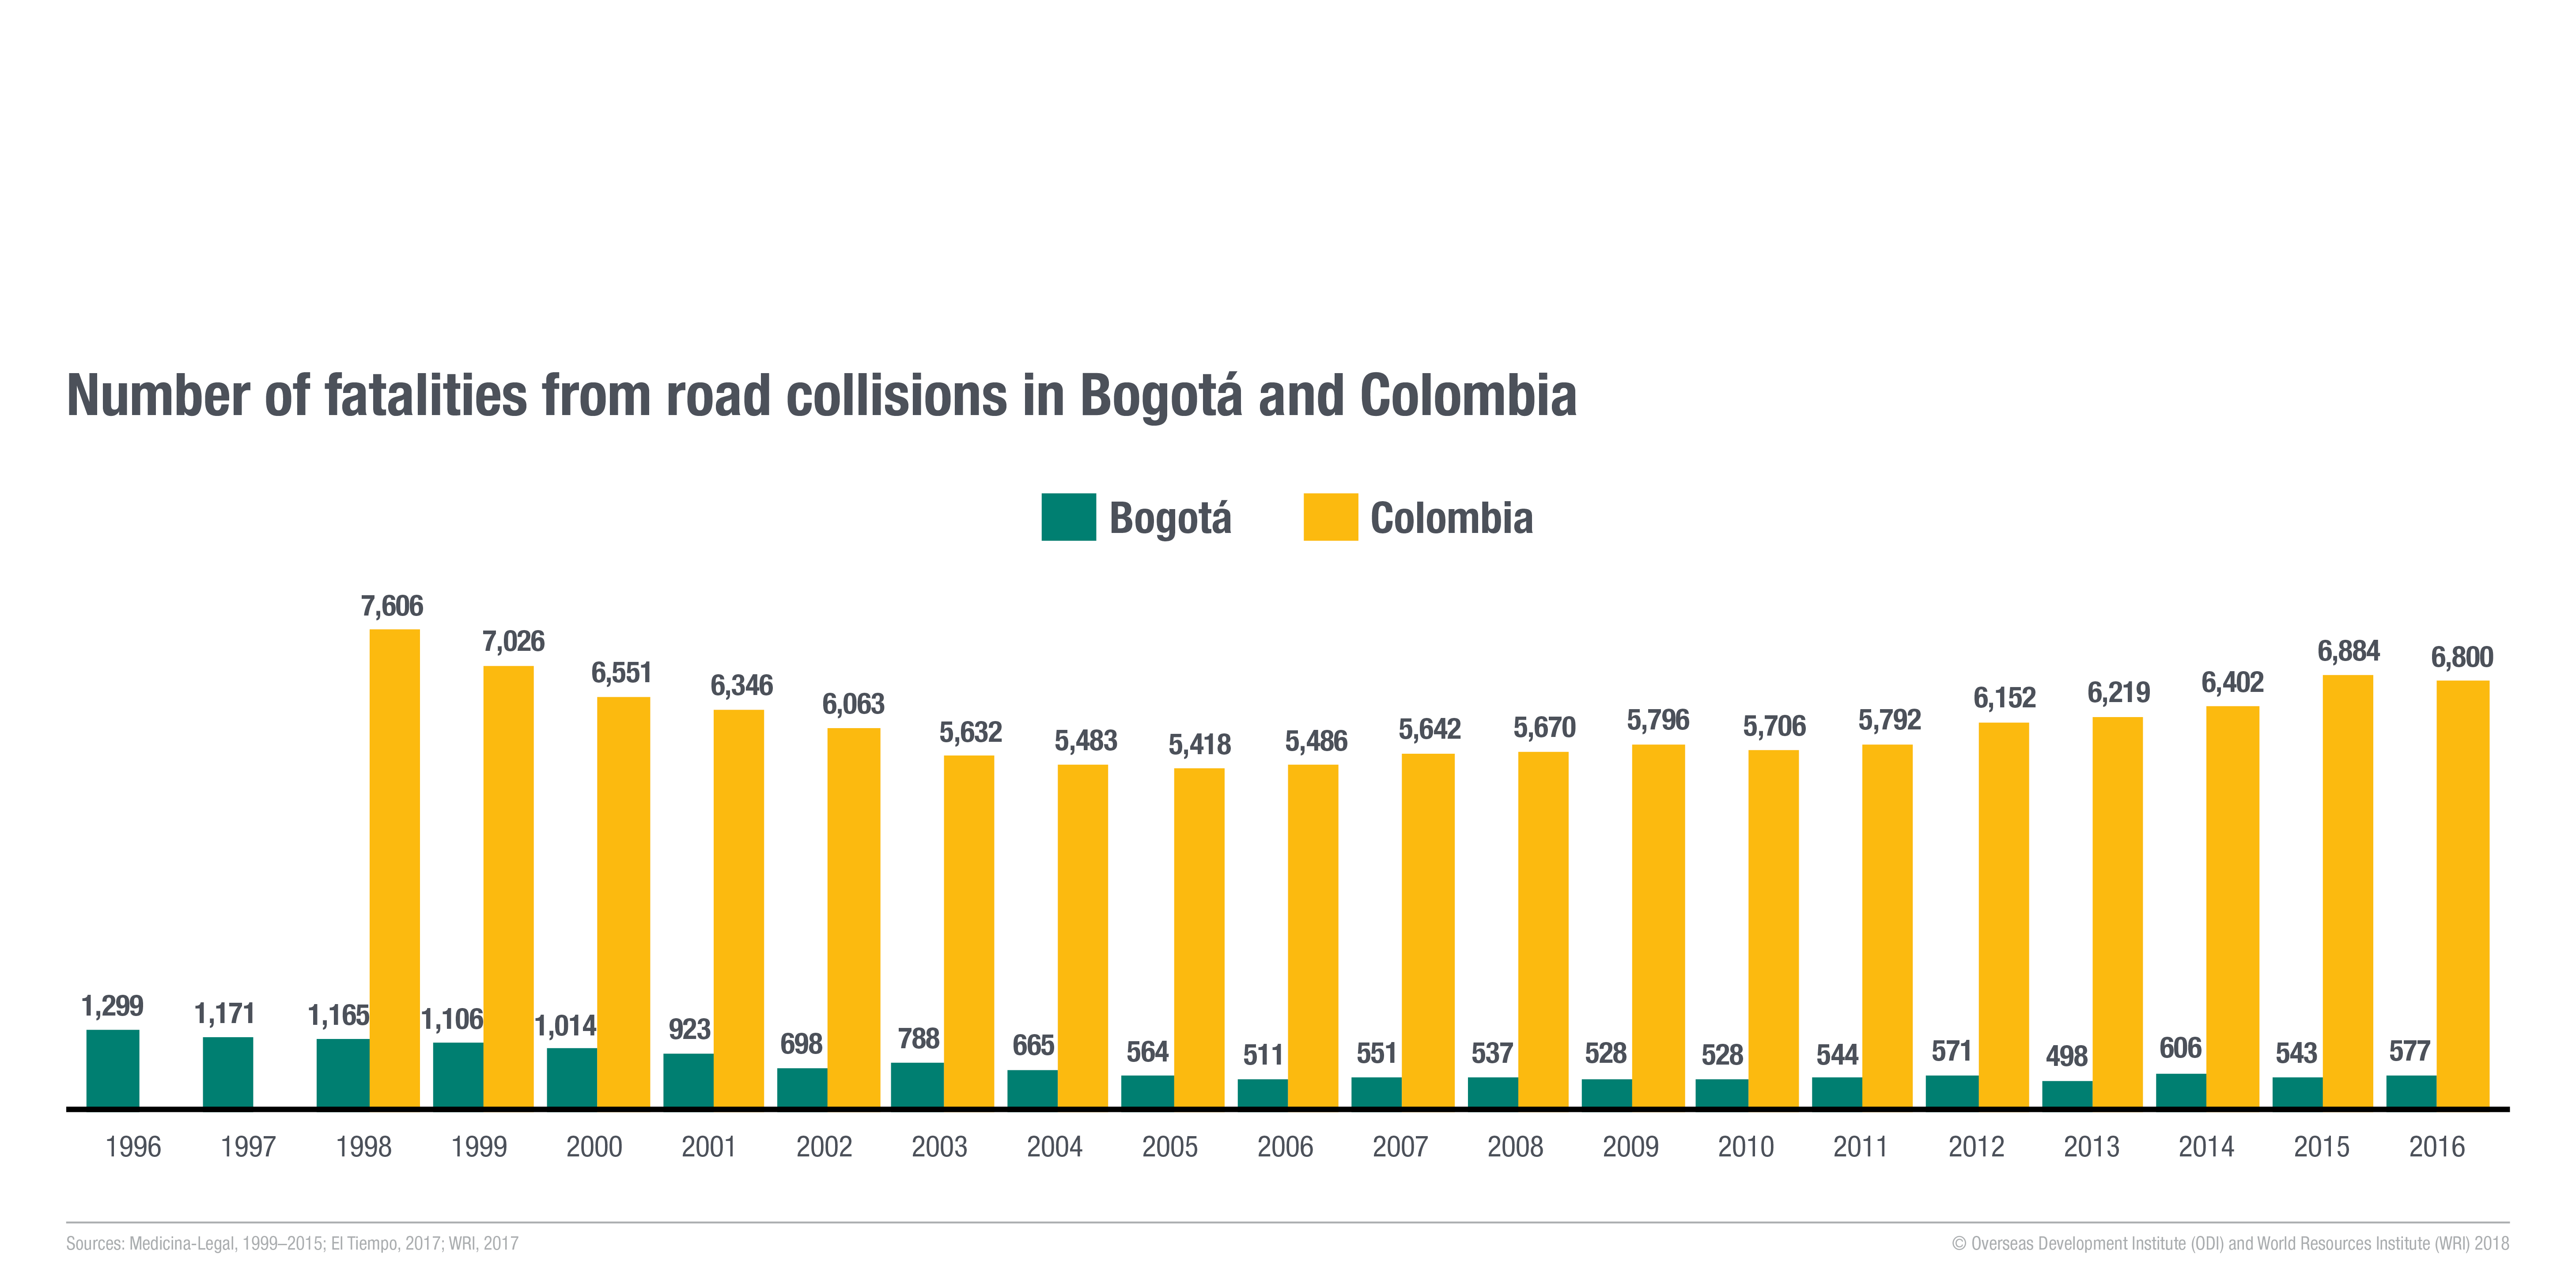 Number of fatalities from road collisions in Bogotá and Colombia. Image: ODI and WRI